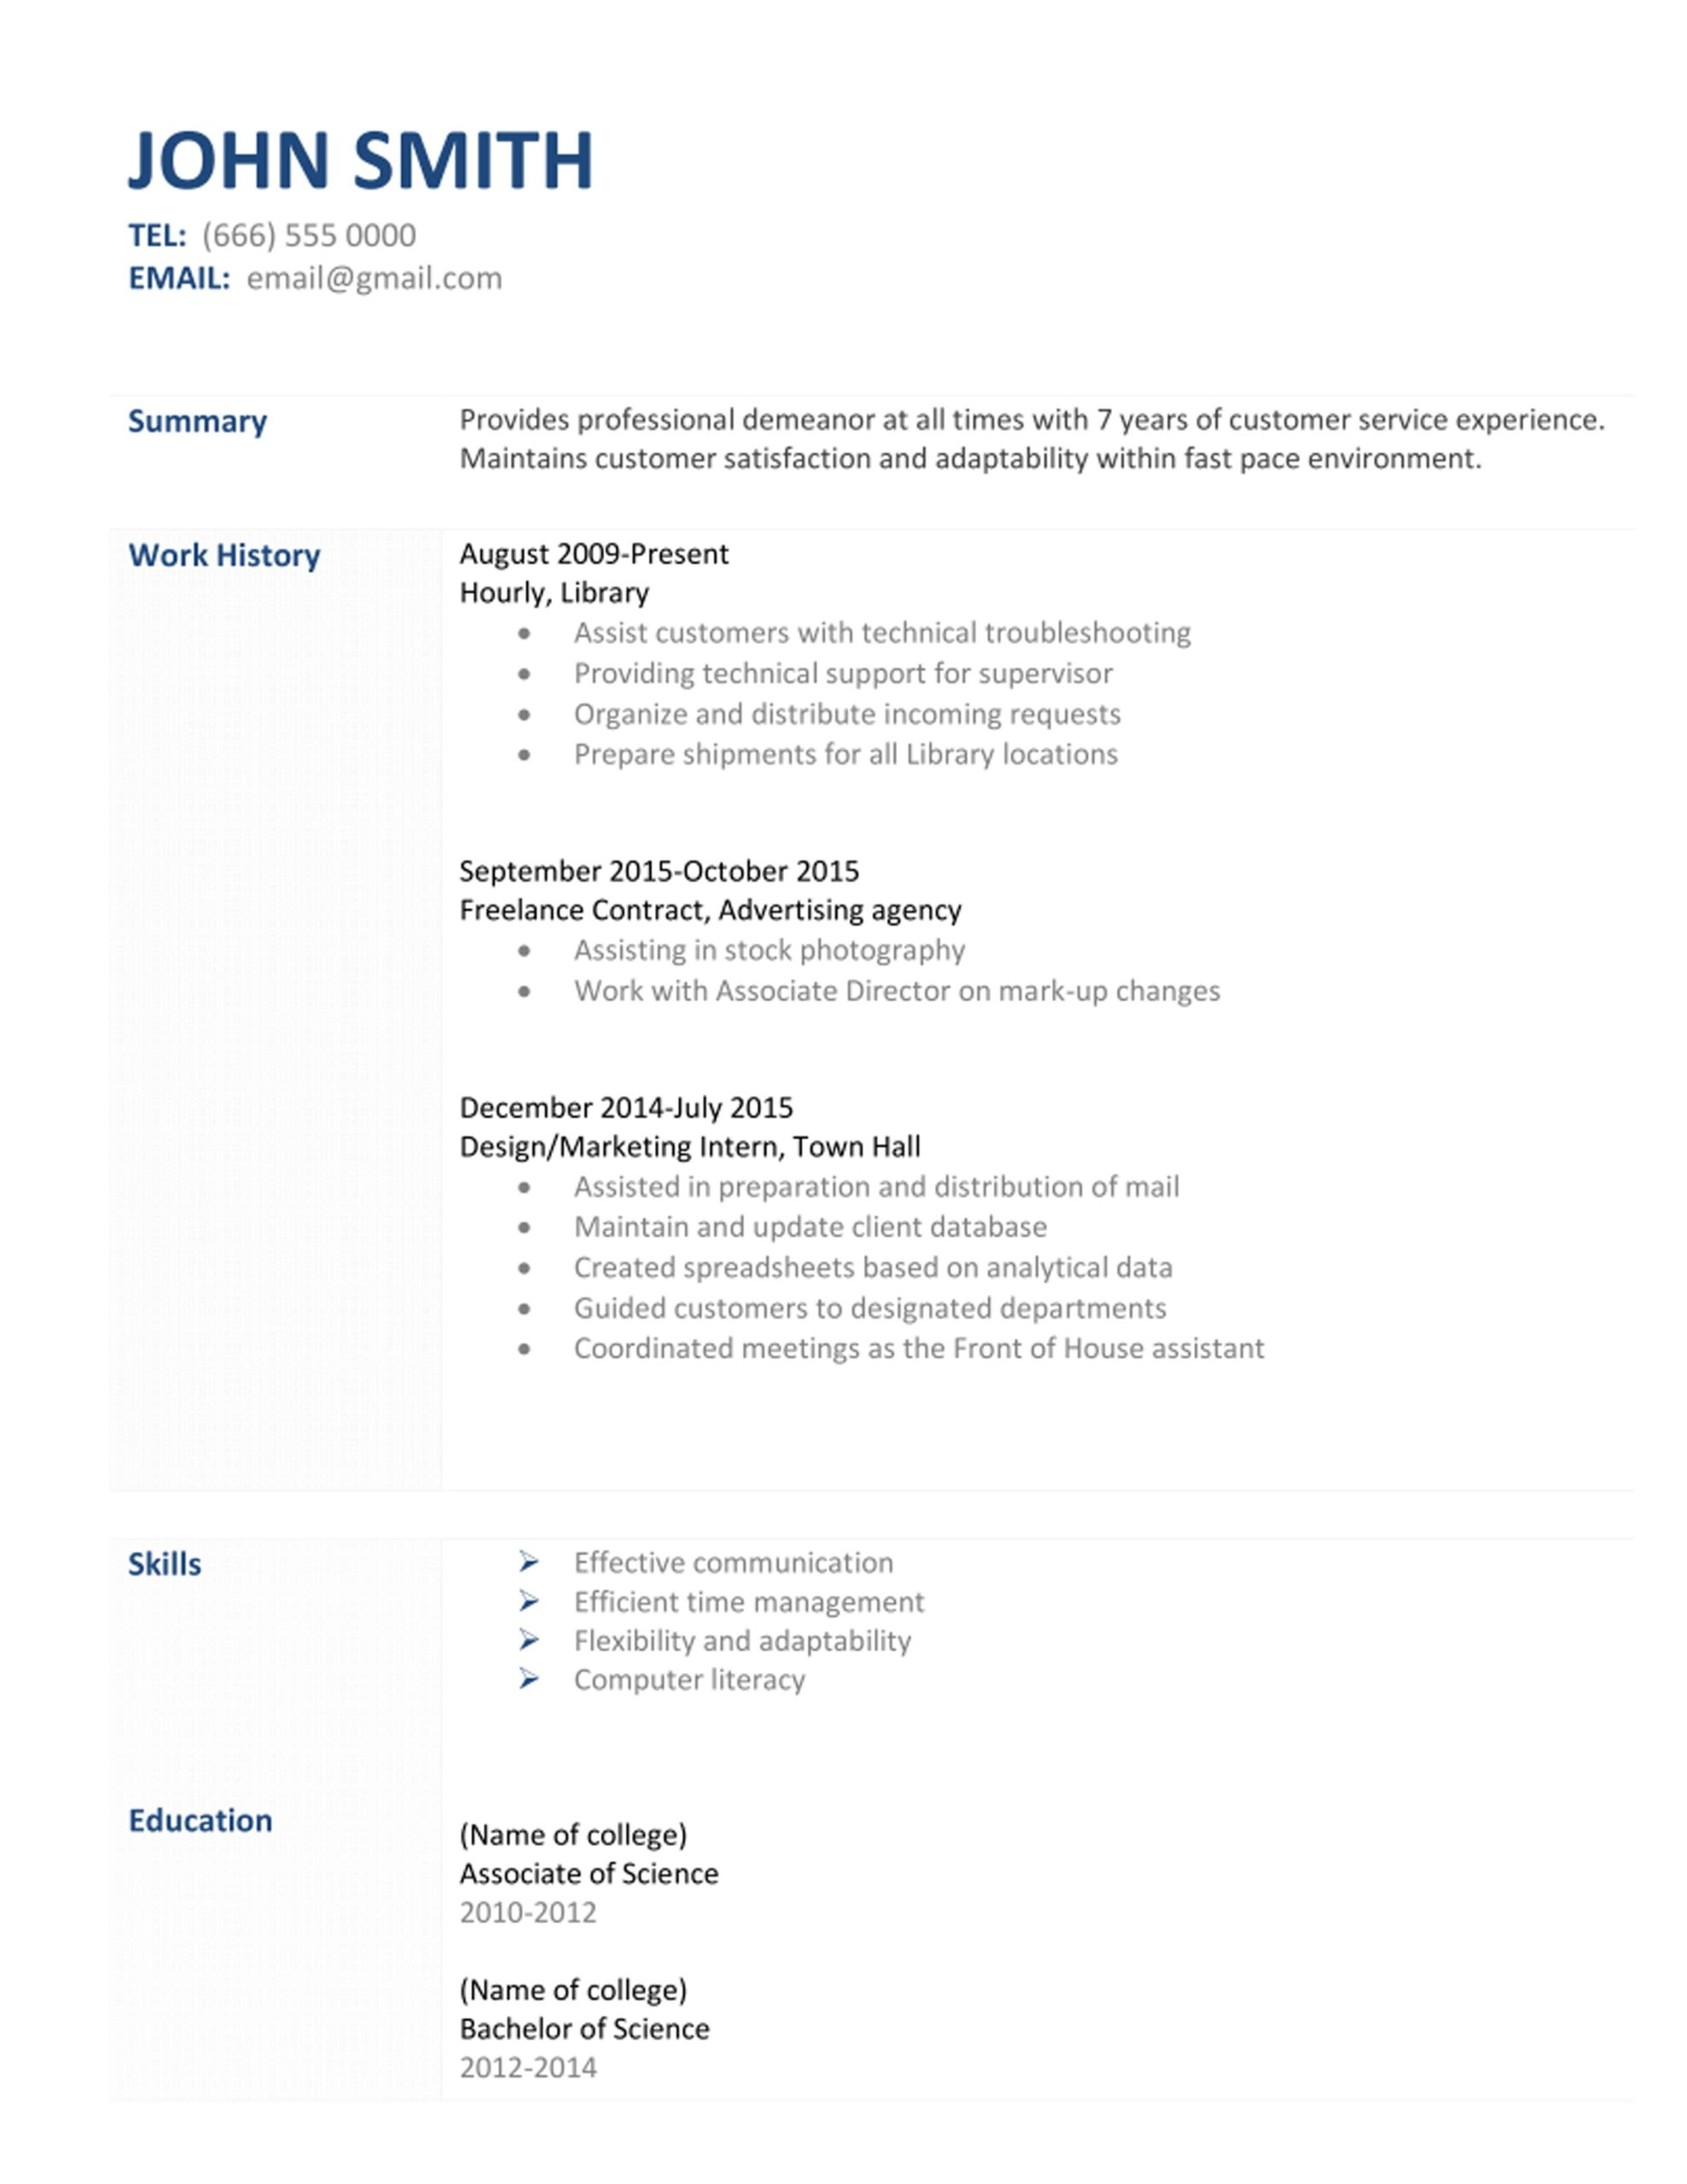 it hard to write resume when you have nothing say resumes flexible and adaptable Resume Flexible And Adaptable Resume